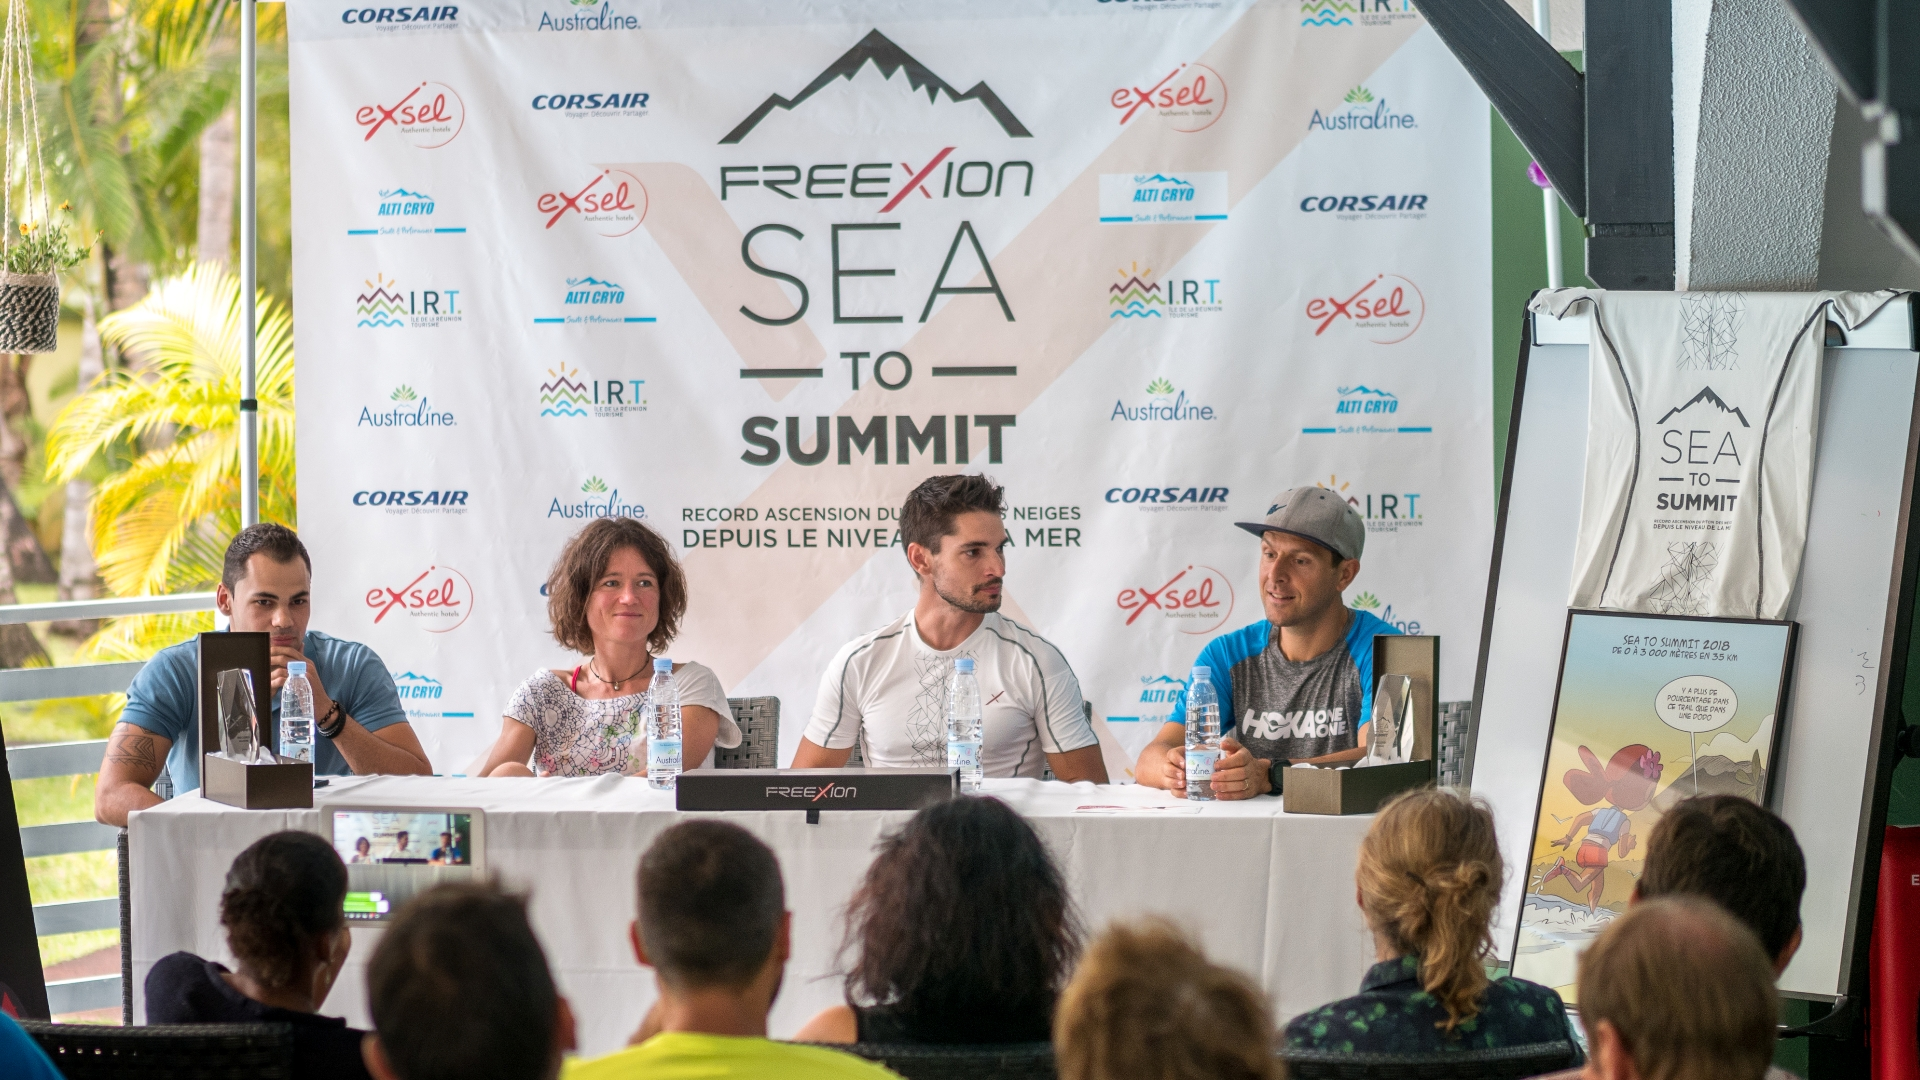 Freexion Sea to Summit 2018